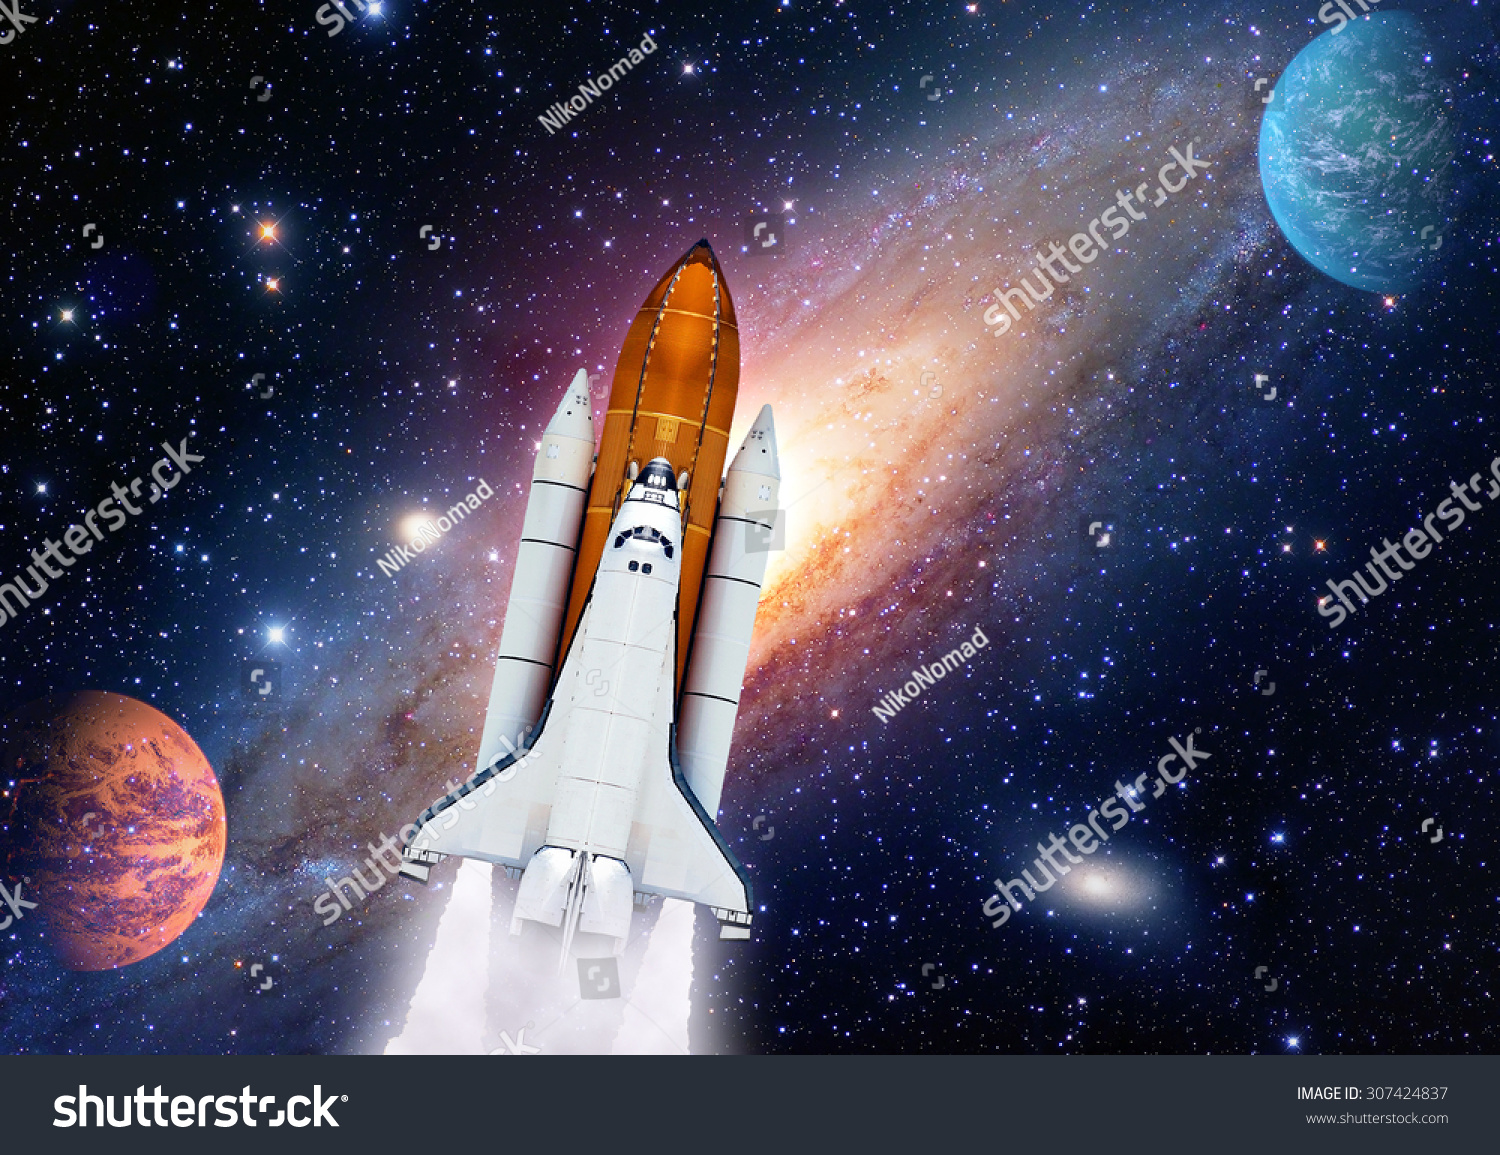 Outer space shuttle rocket launch spaceship stock photo for Outer space elements